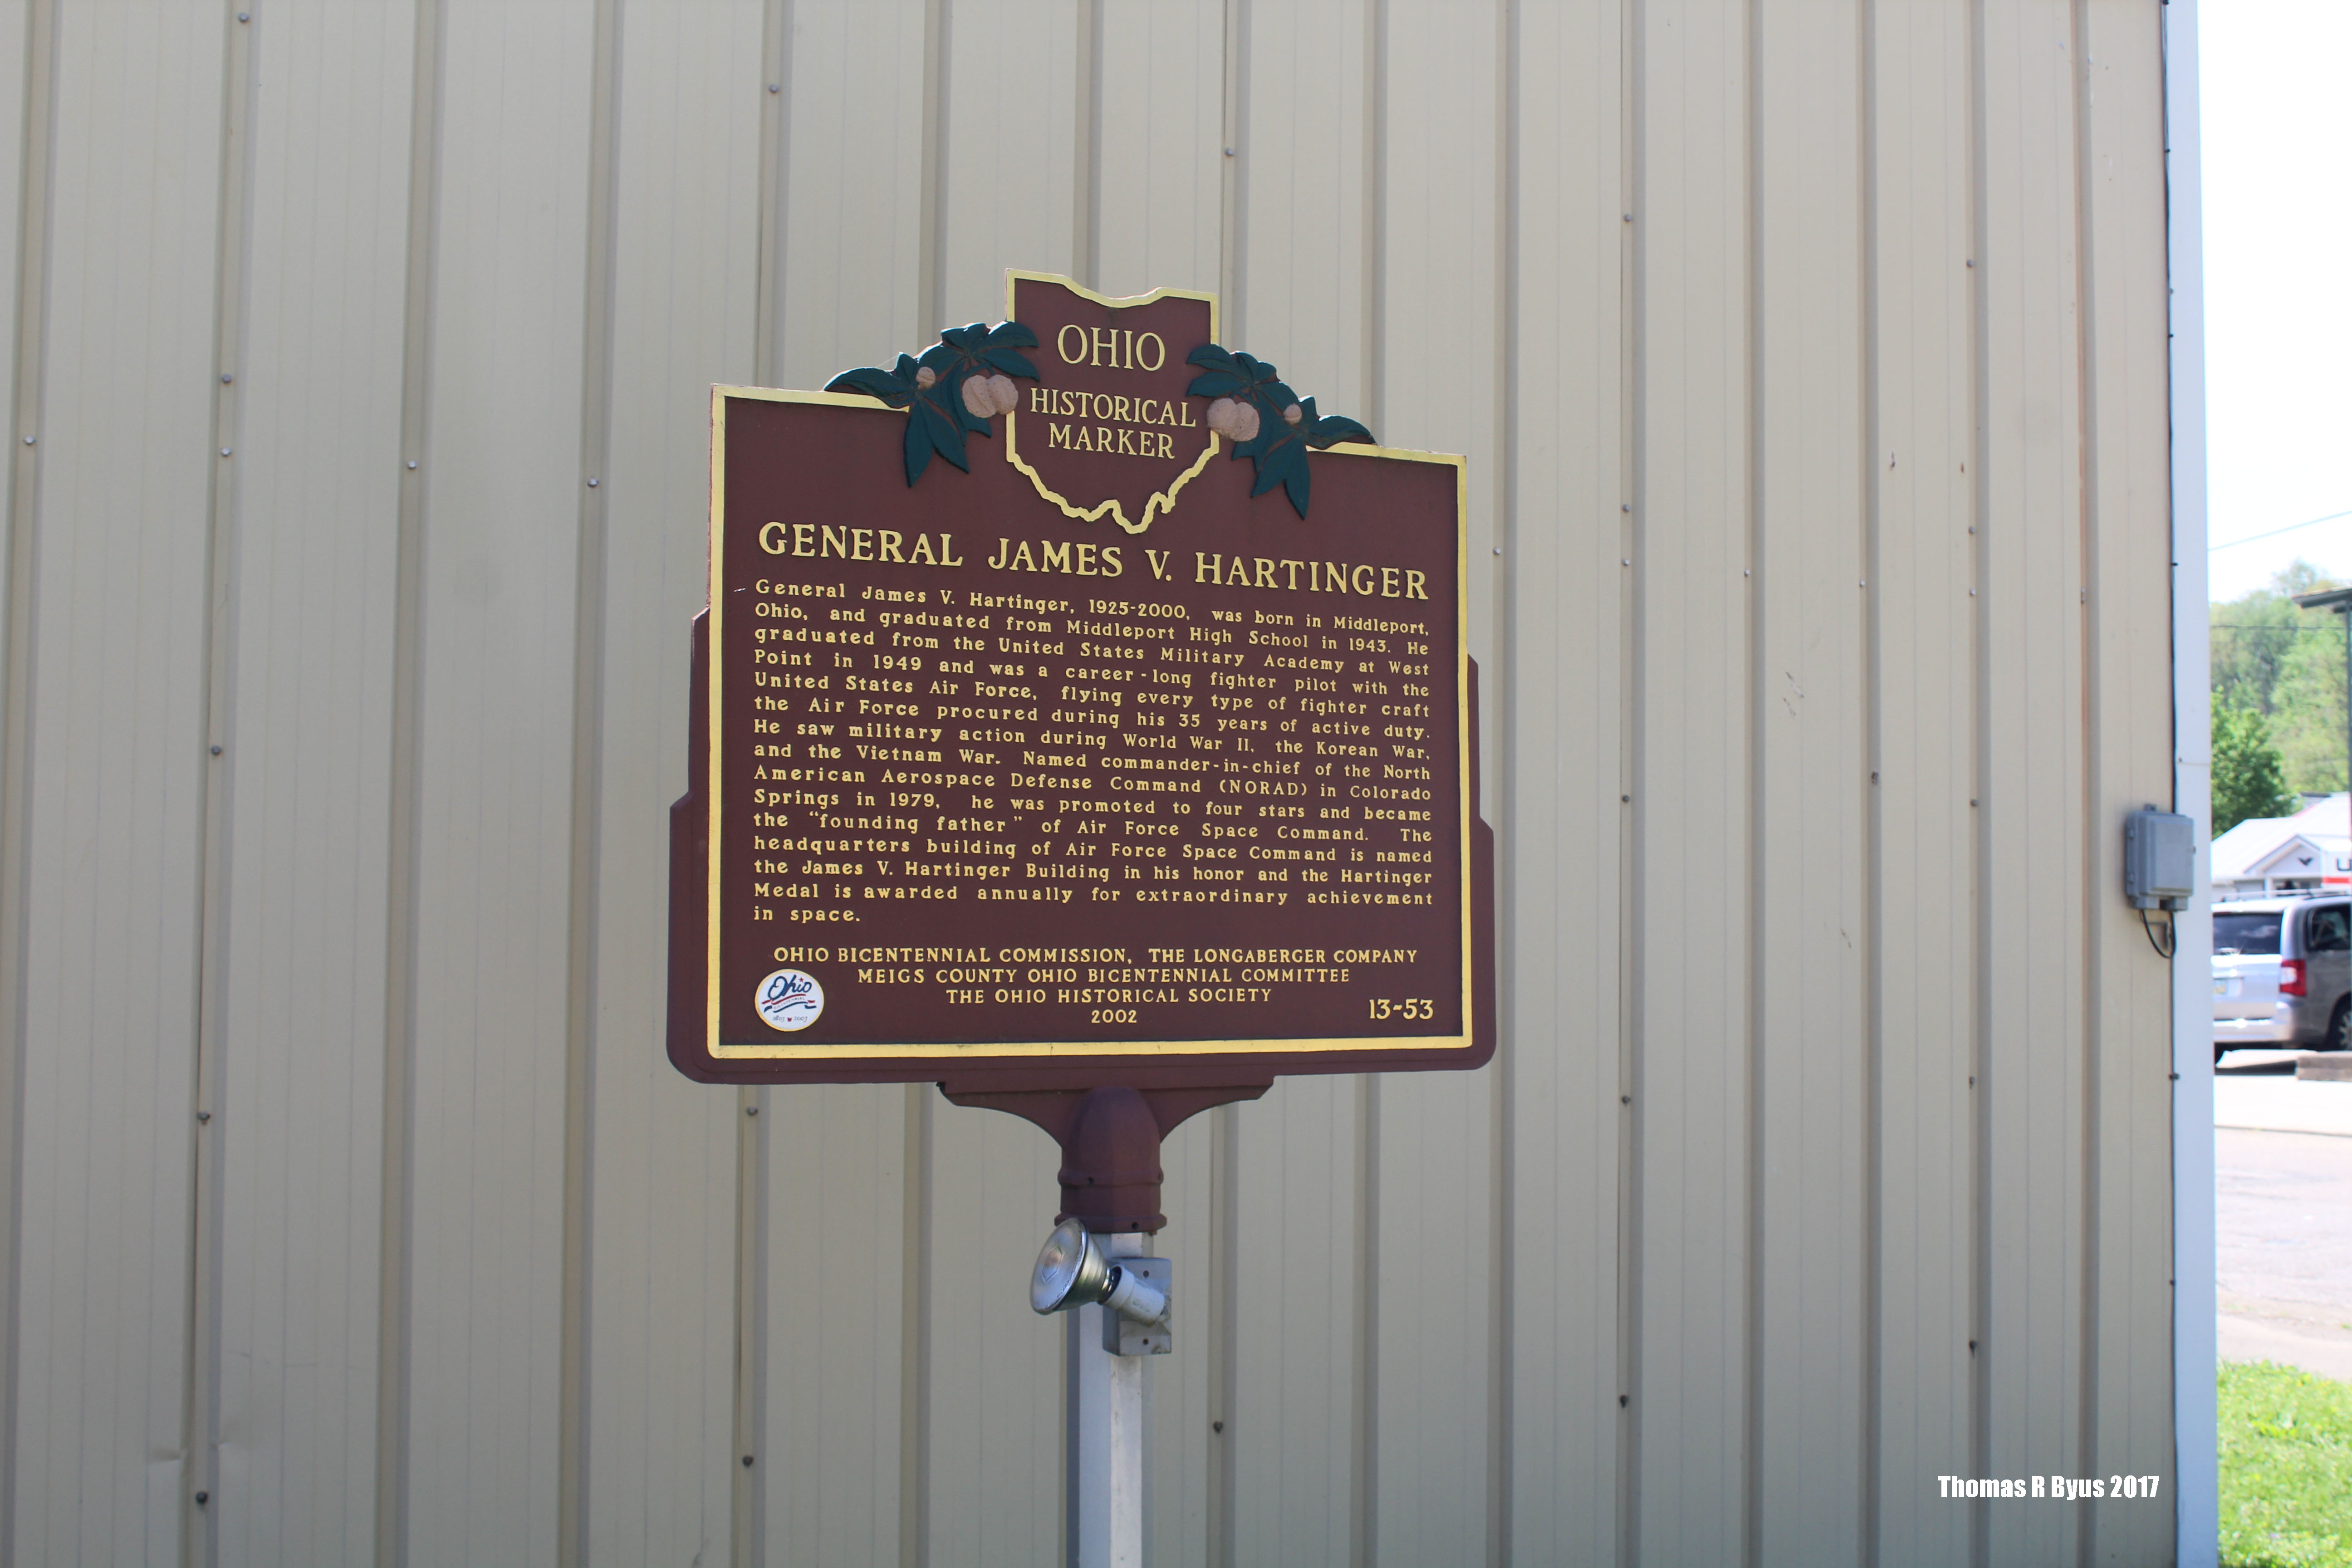 The historical marker at 229 Mill St, Middleport, Ohio